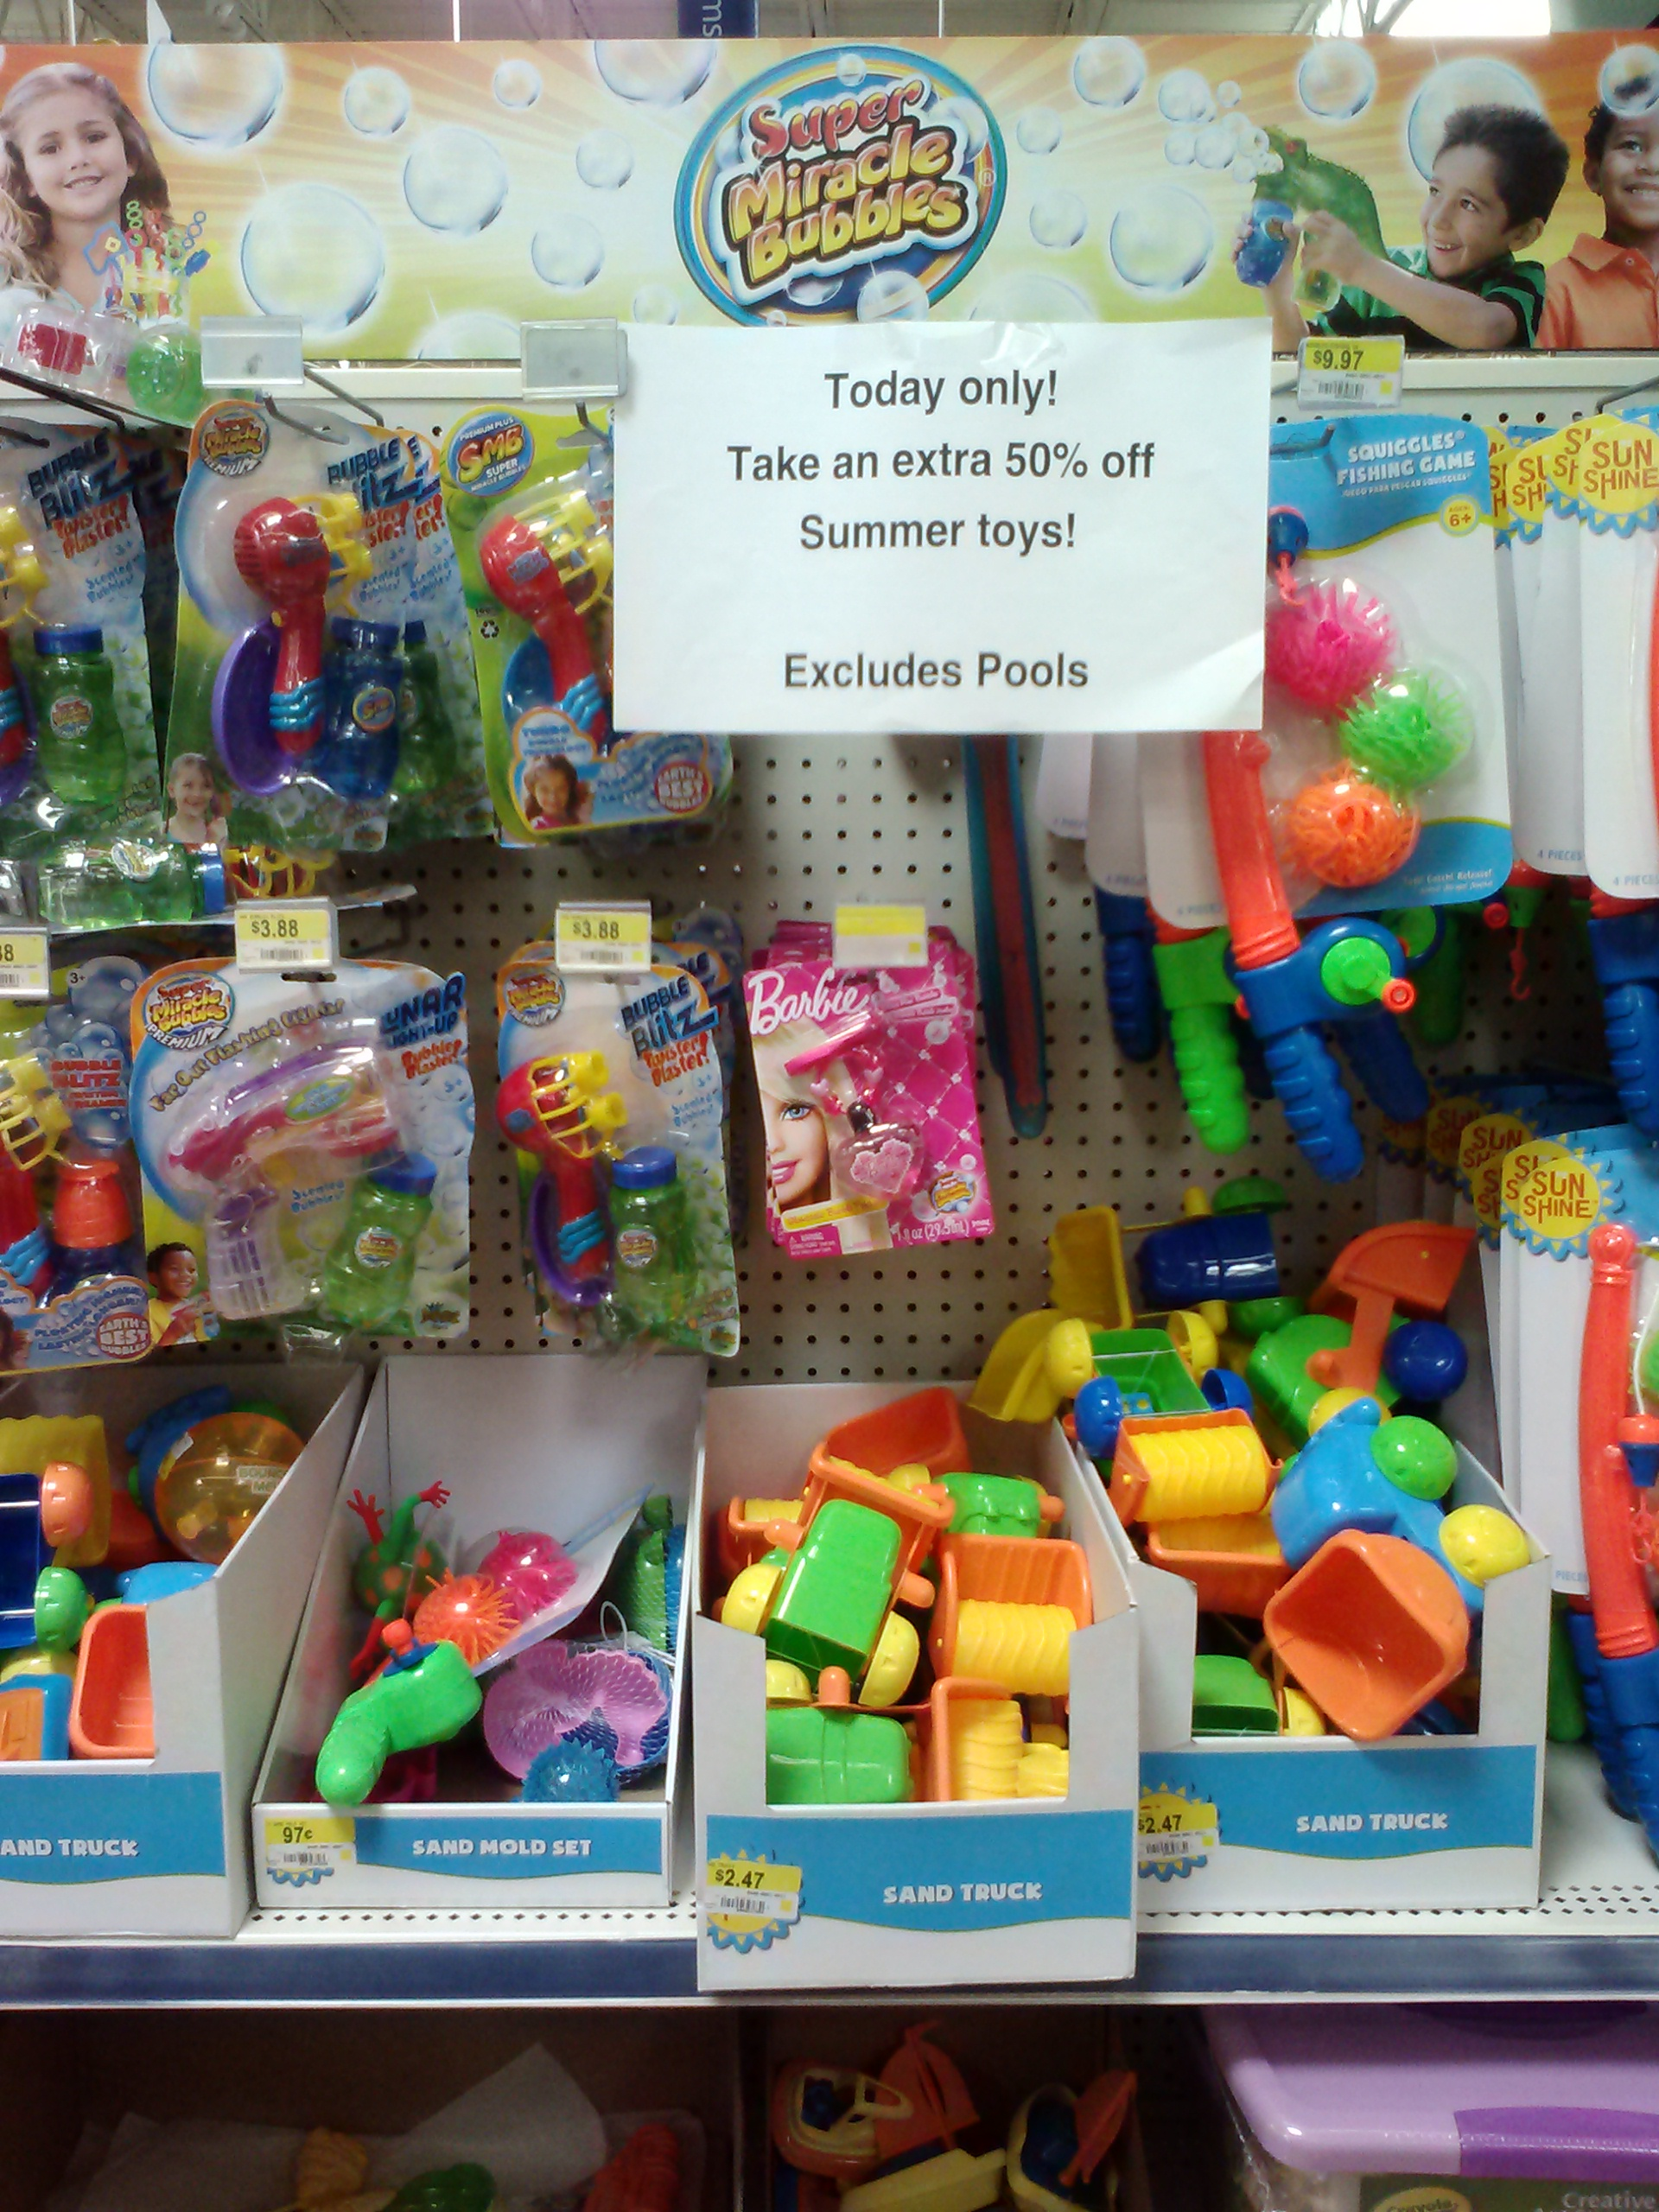 Toys For The Summer : Summer toys off at walmart today only mojosavings